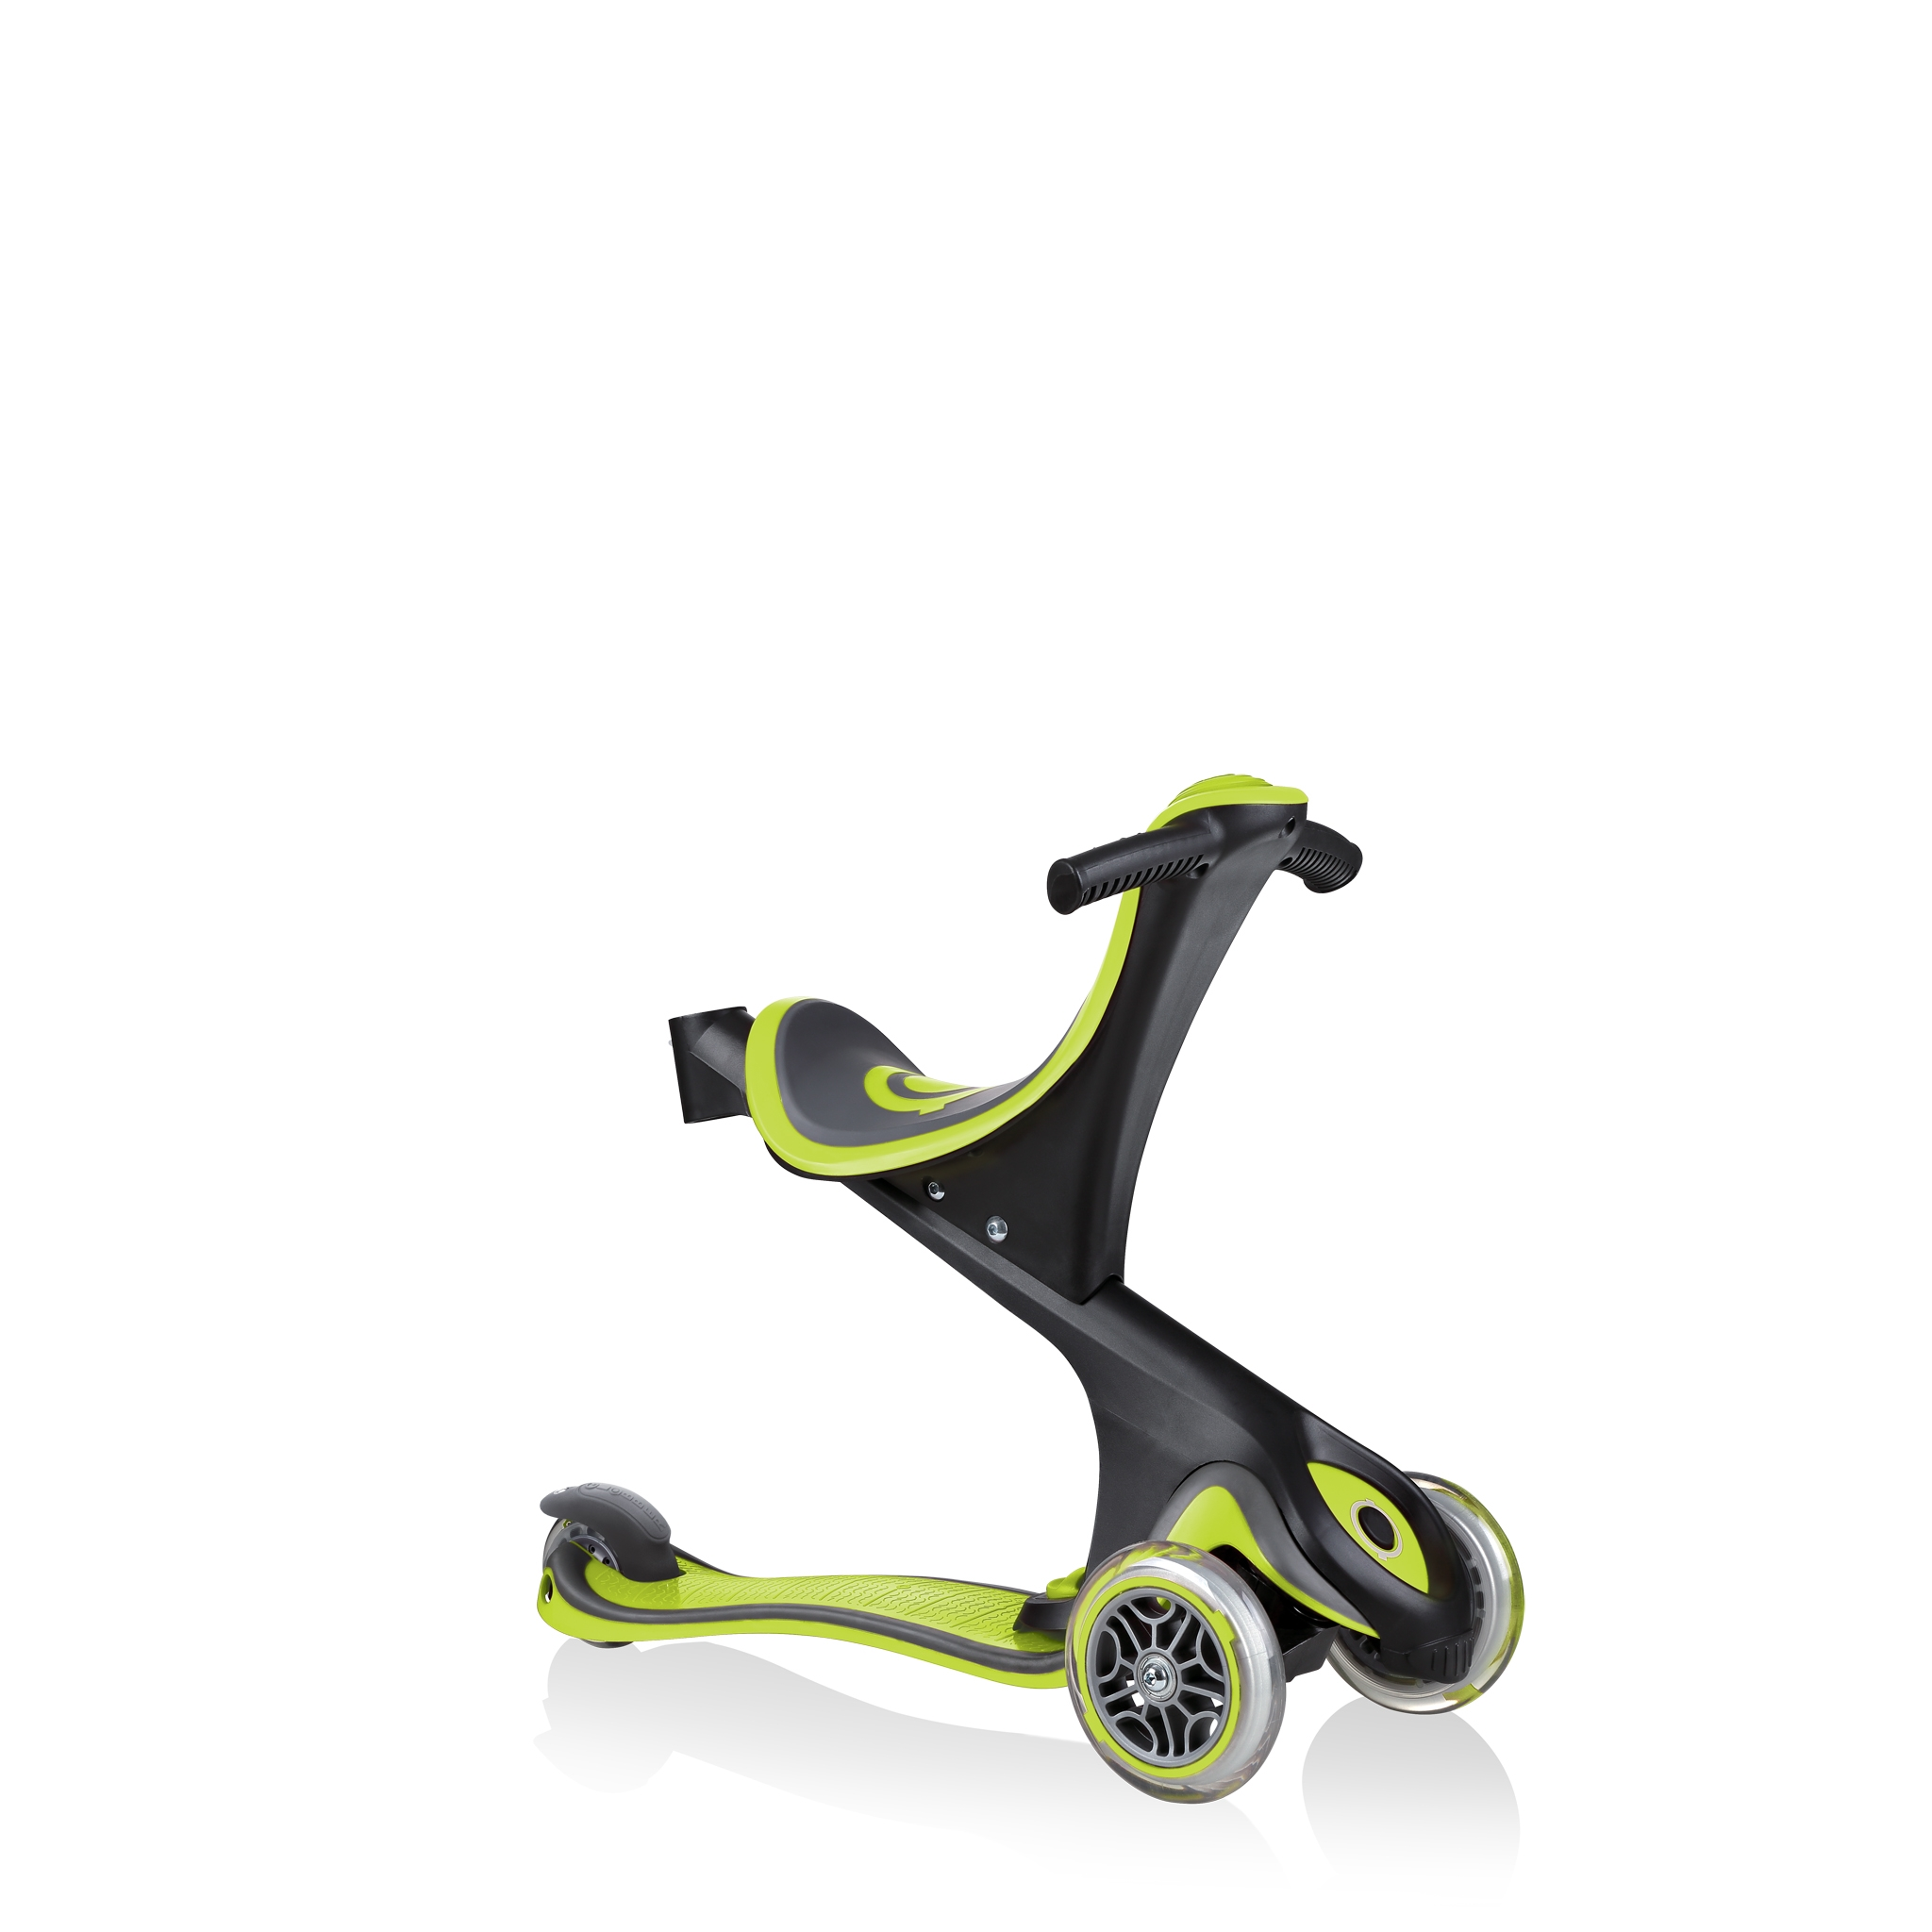 GO-UP-COMFORT-scooter-with-seat-walking-bike-lime-green